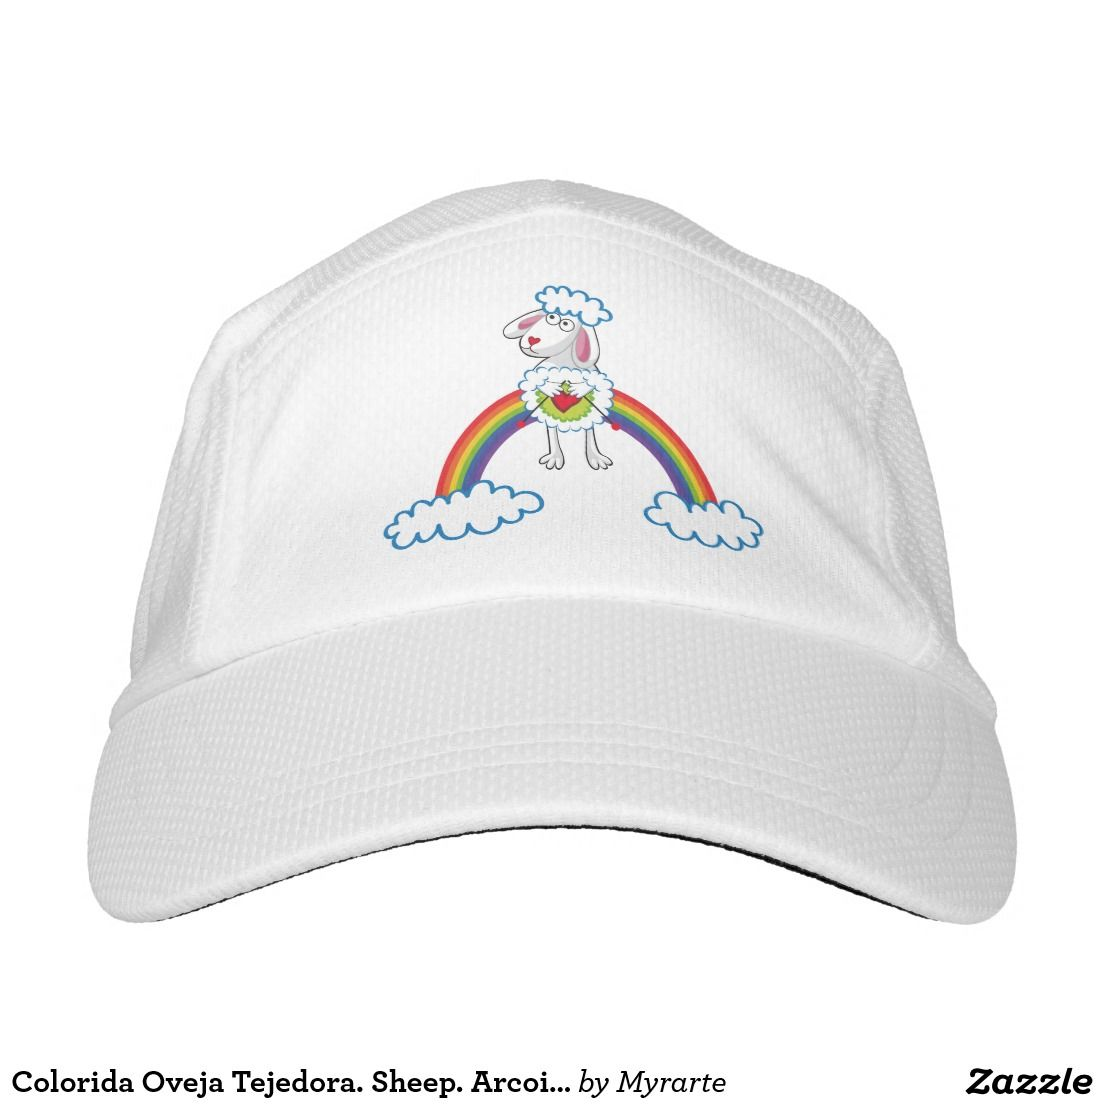 Colorida Oveja Tejedora. Sheep. Arcoiris, rainbow. Regalos, Gifts. #gorra #hat